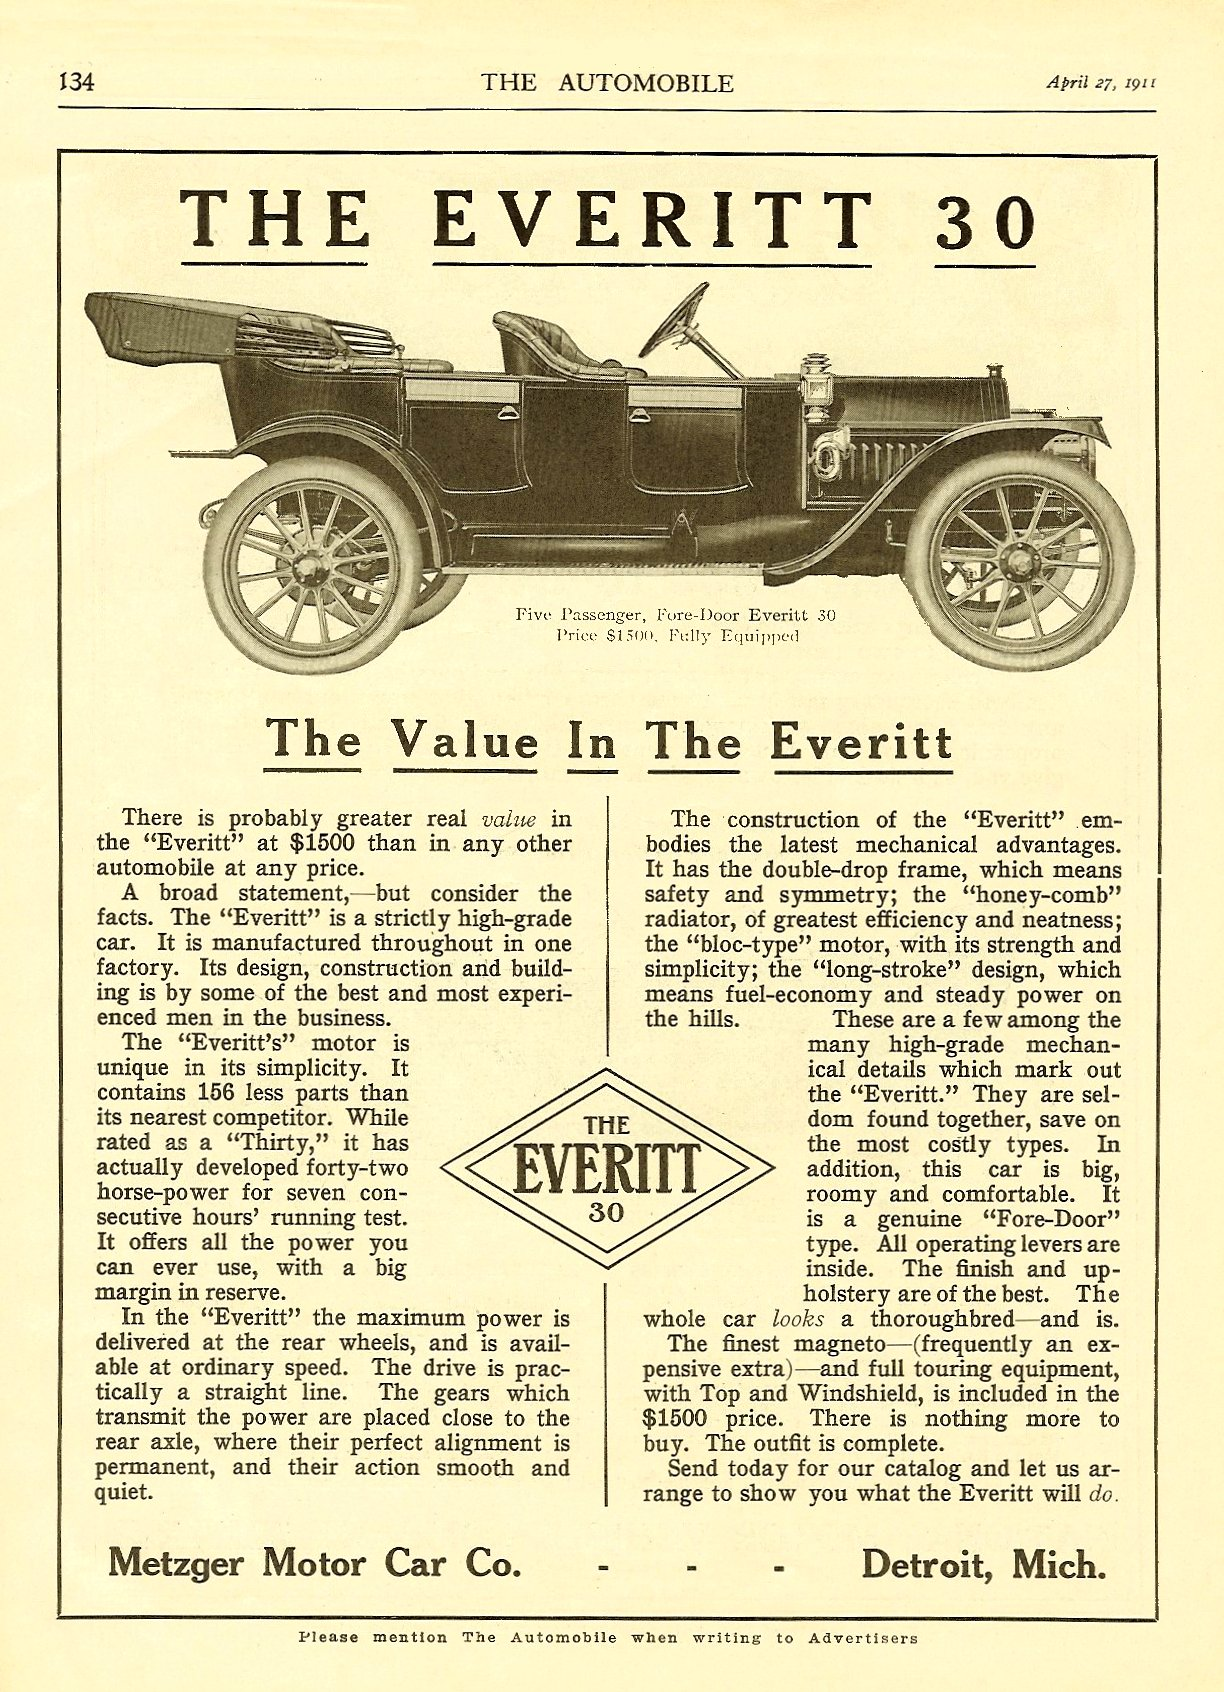 """1911 4 27 THE AUTOMOBILE 1911 THE EVERITT 30 """"The Value In The Everitt"""" April 27, 1911 8.5″x12″ page 134"""